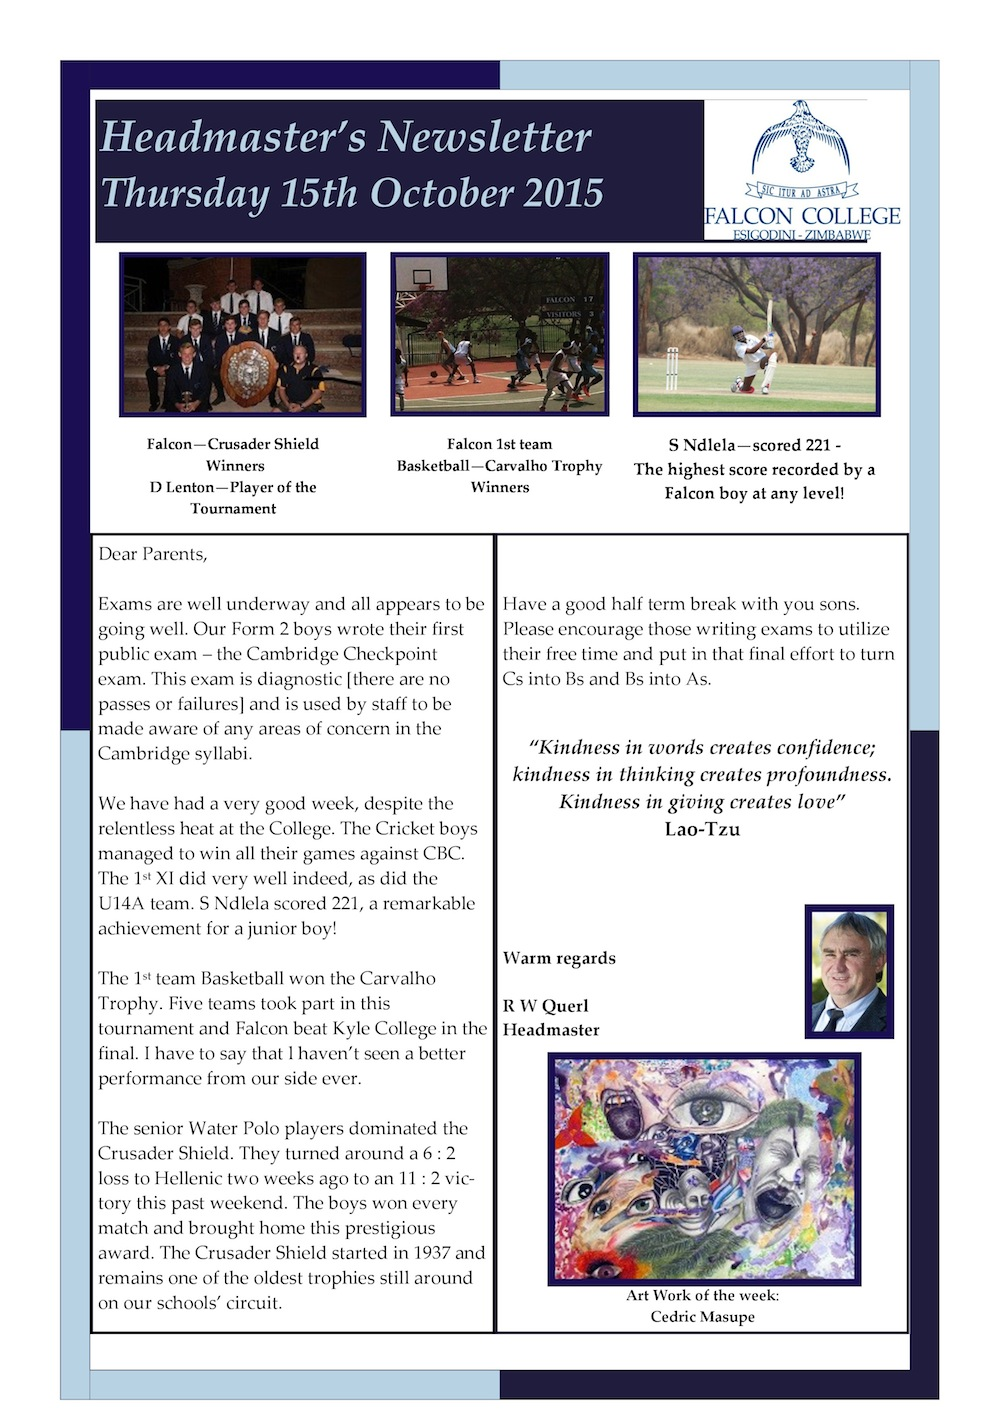 Headmaster's Newsletter Thursday 15th October 2015 edited (4)-page-0